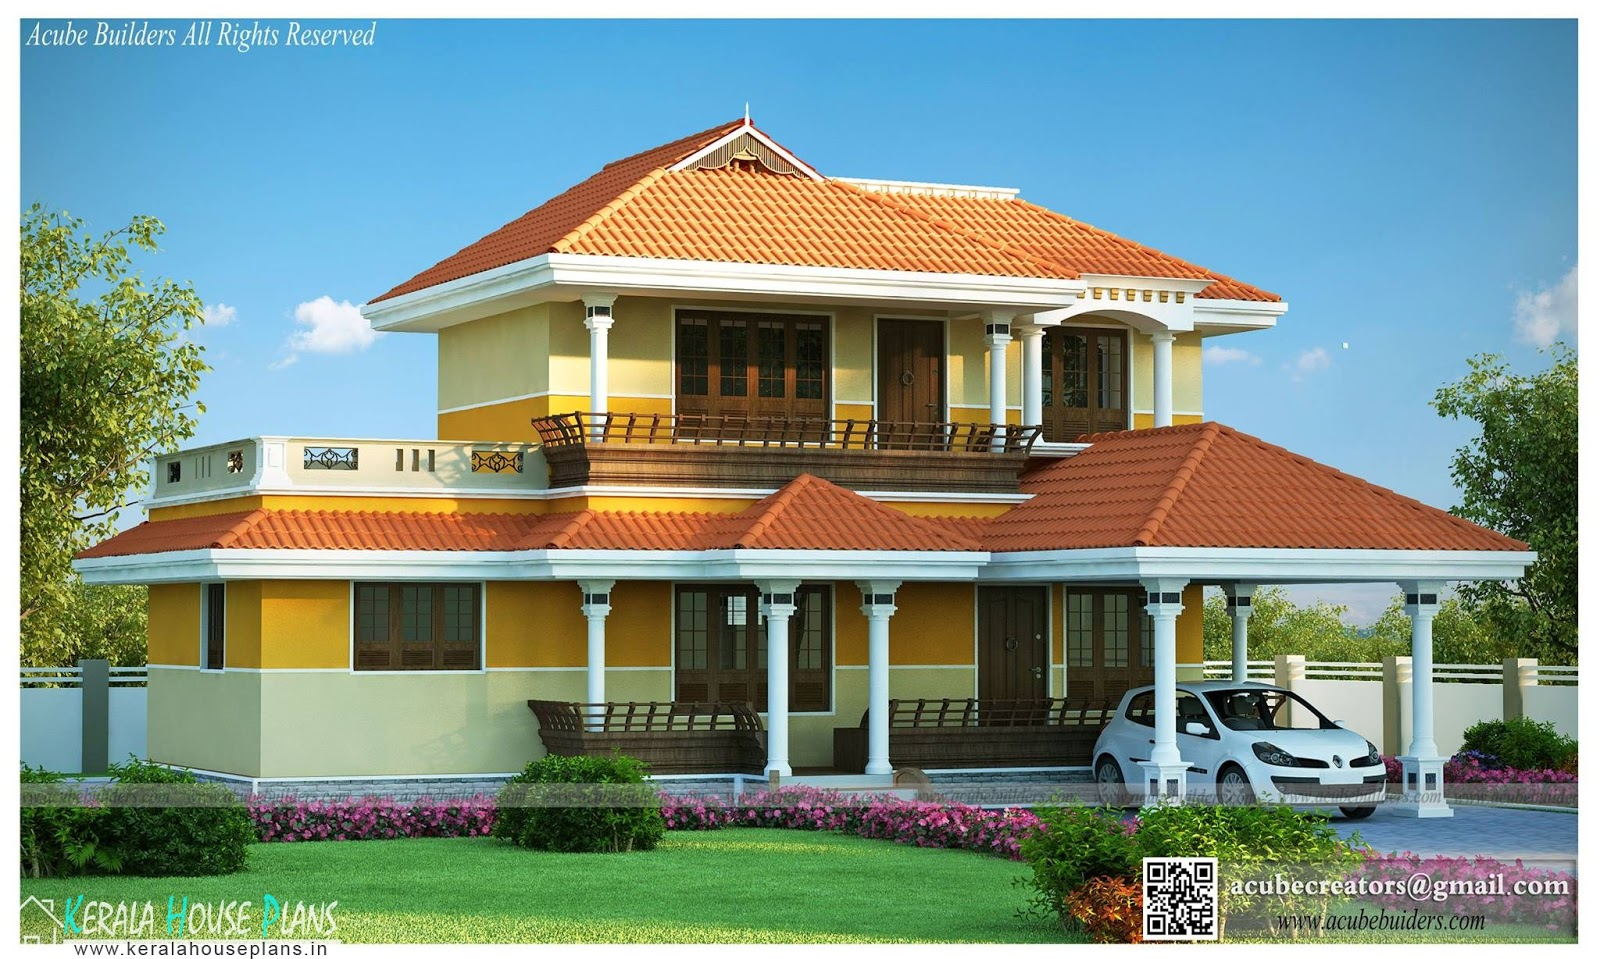 Traditional house plans in kerala kerala house plans for Traditional house plans